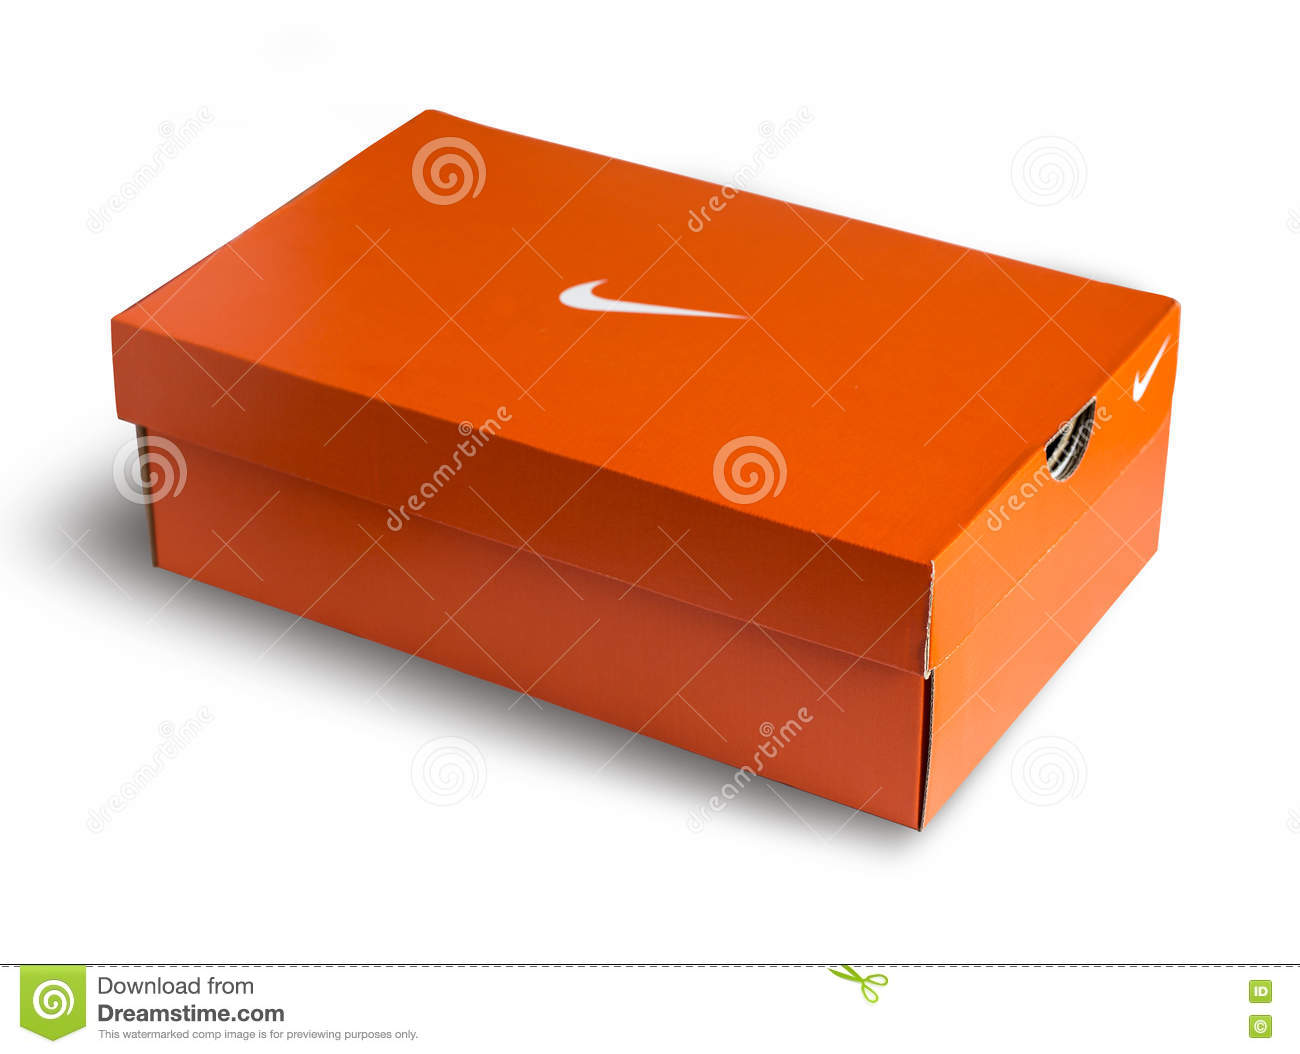 Nike Shoe Box Open